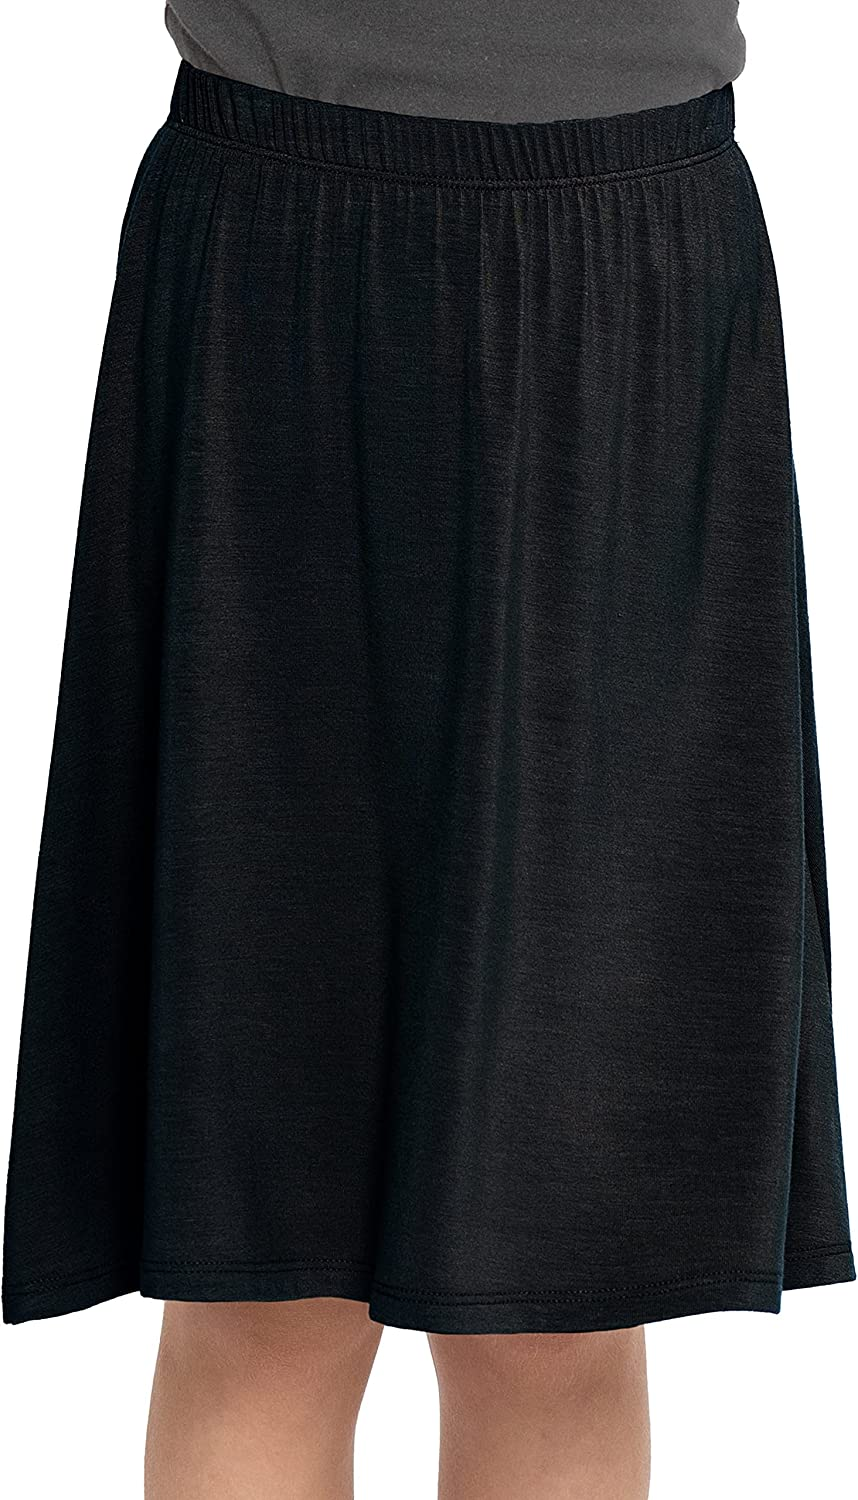 Premium Stretch Youth Girls Knee Length Flowy A-Line Skirt   Kids   Made in USA